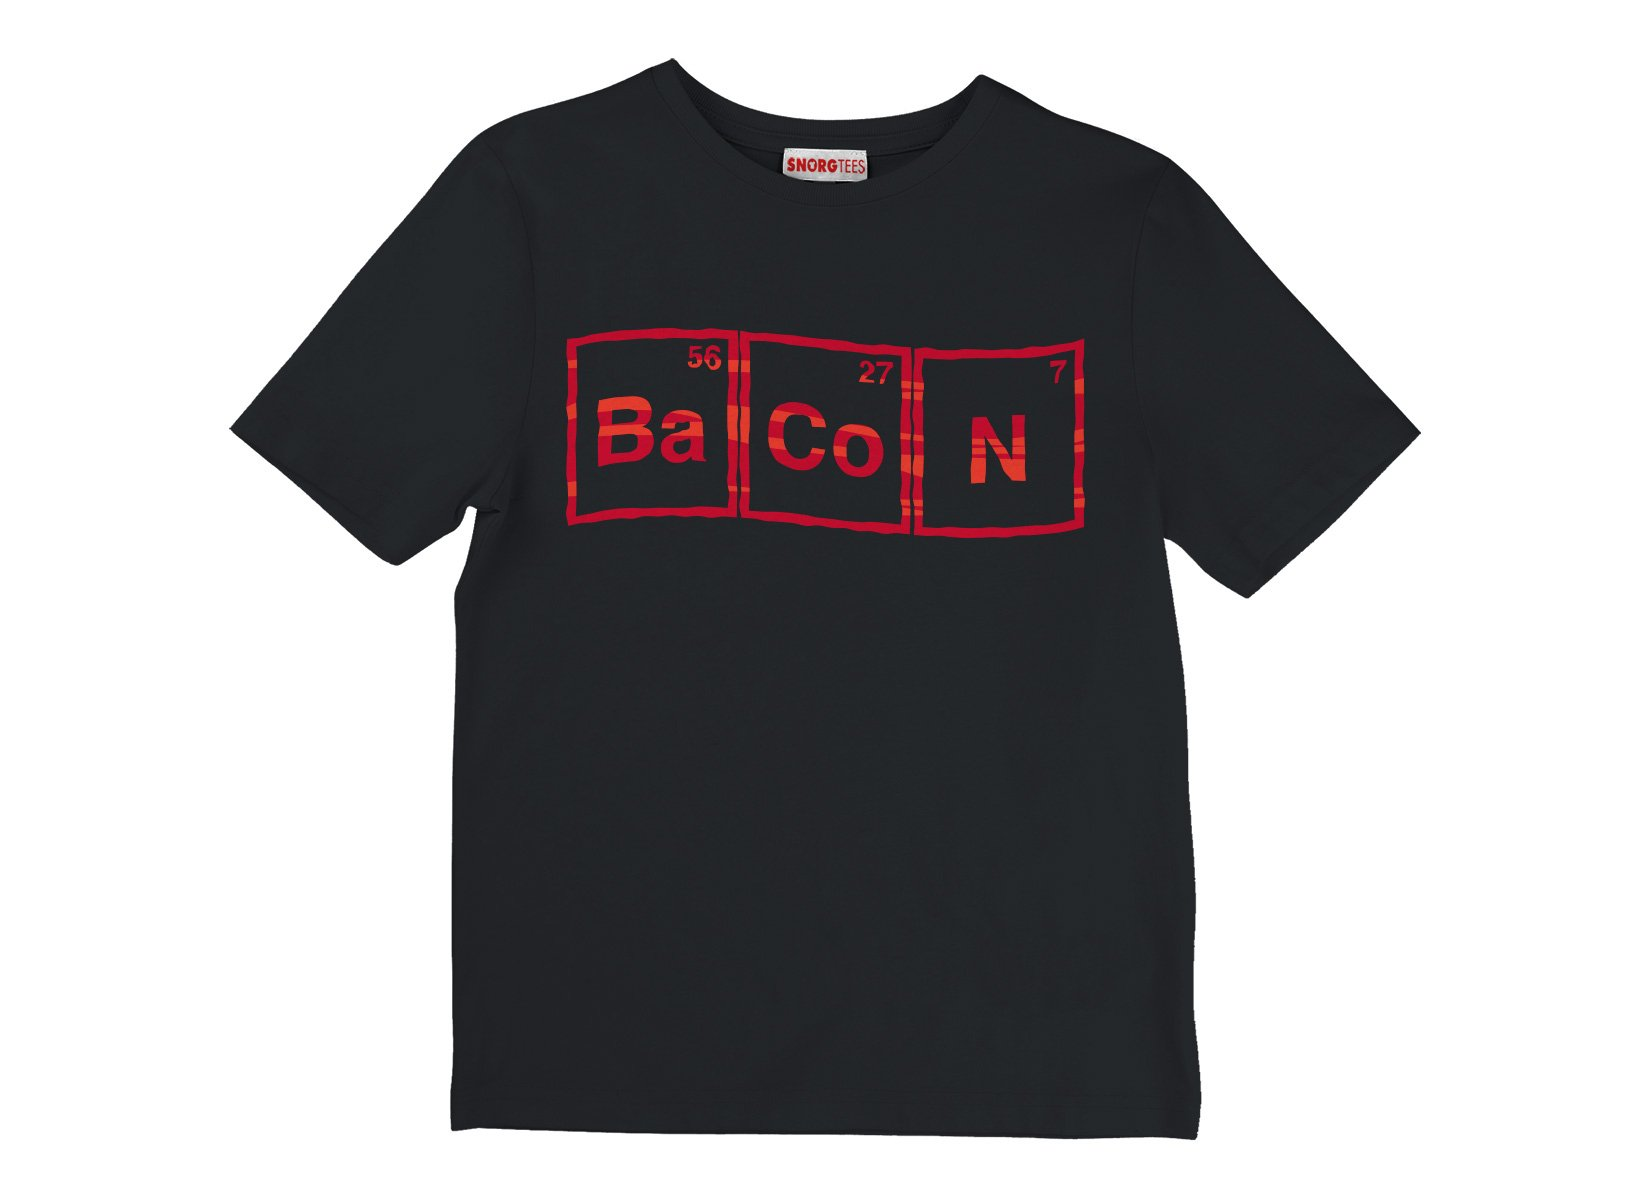 Bacon Compound on Kids T-Shirt